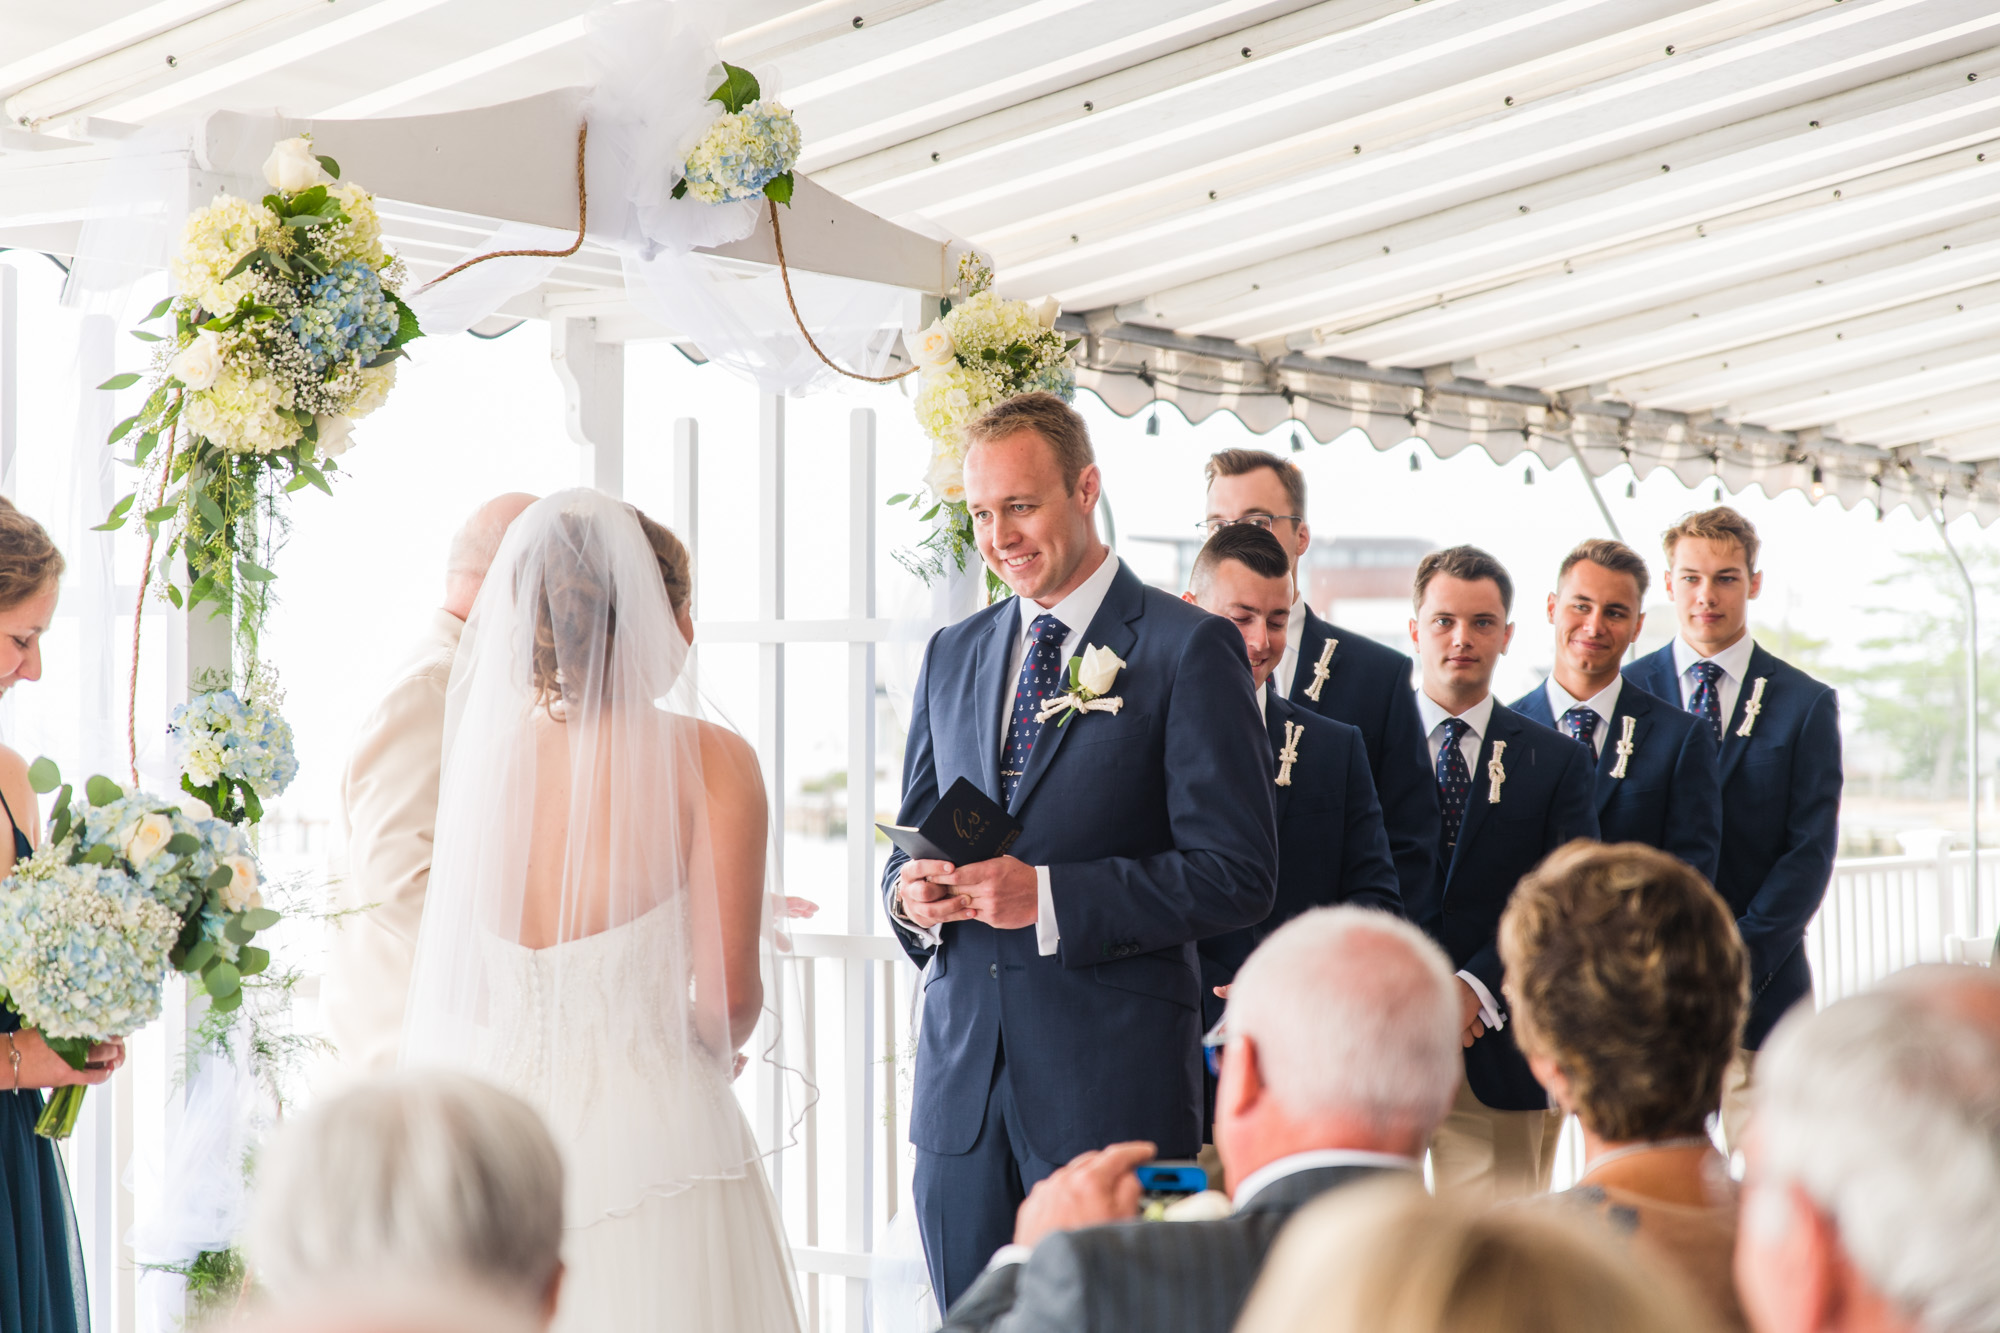 brant-beach-yacht-club-lbi-wedding-photographer-kayla-21.jpg